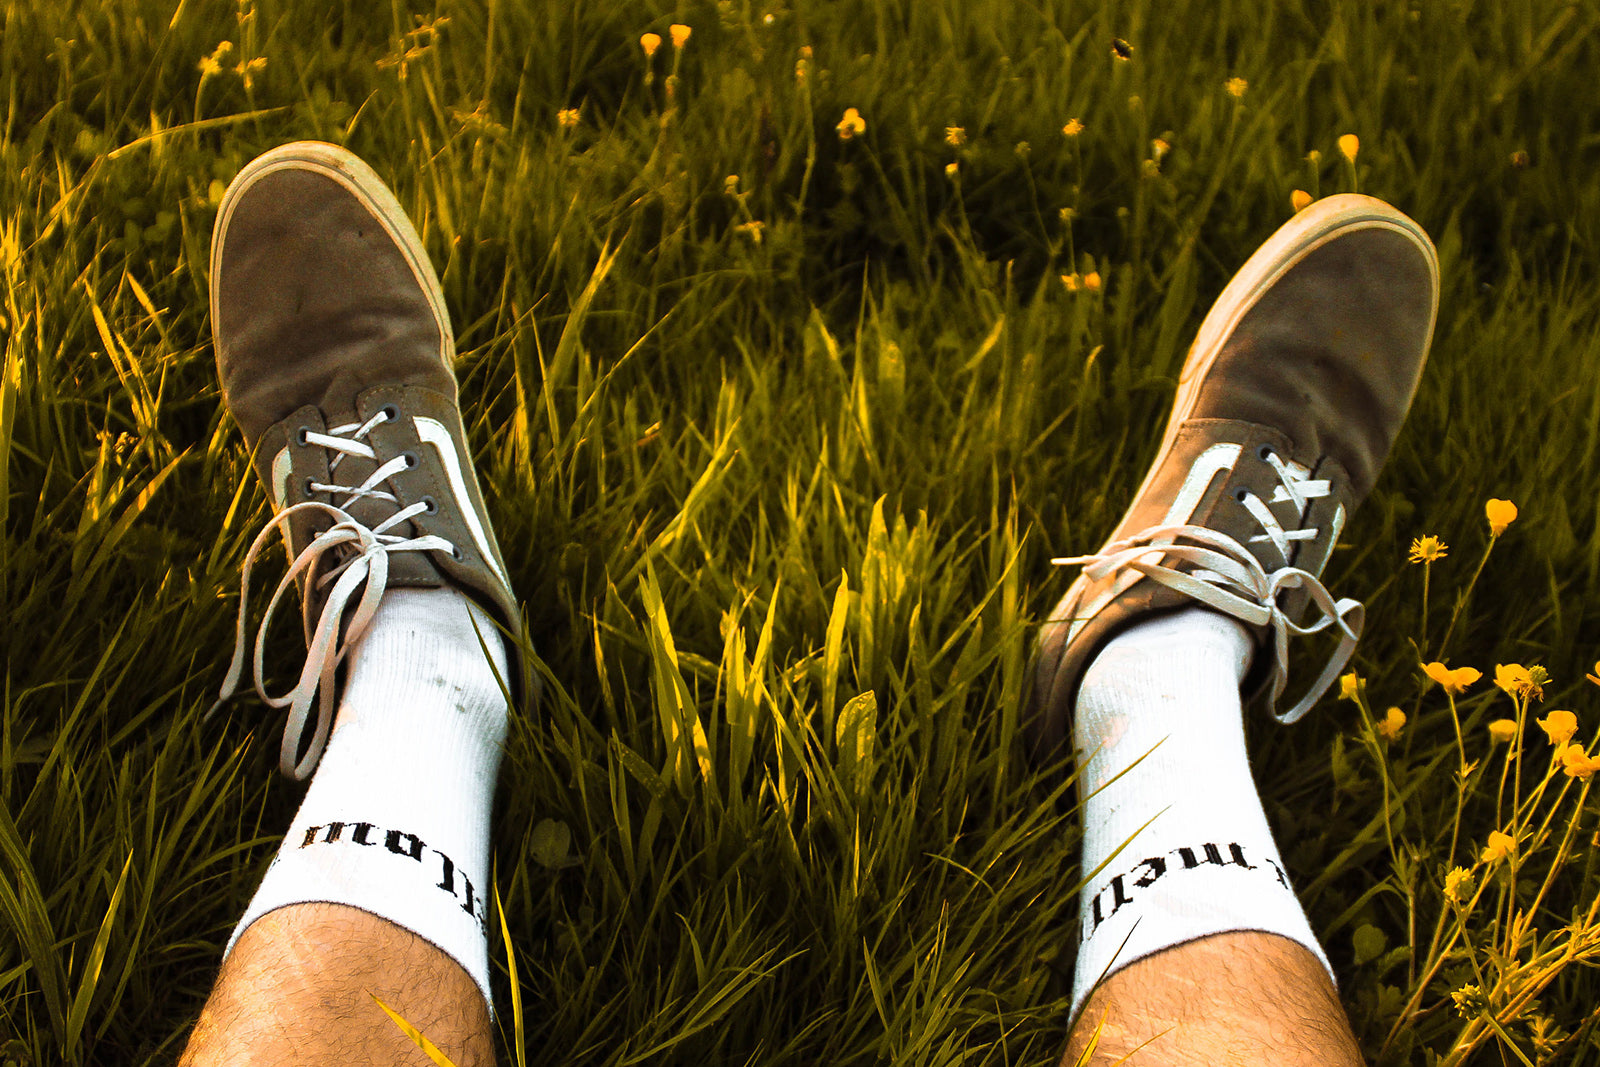 Selfshot image of a mans feet in green grass with yellow flowers